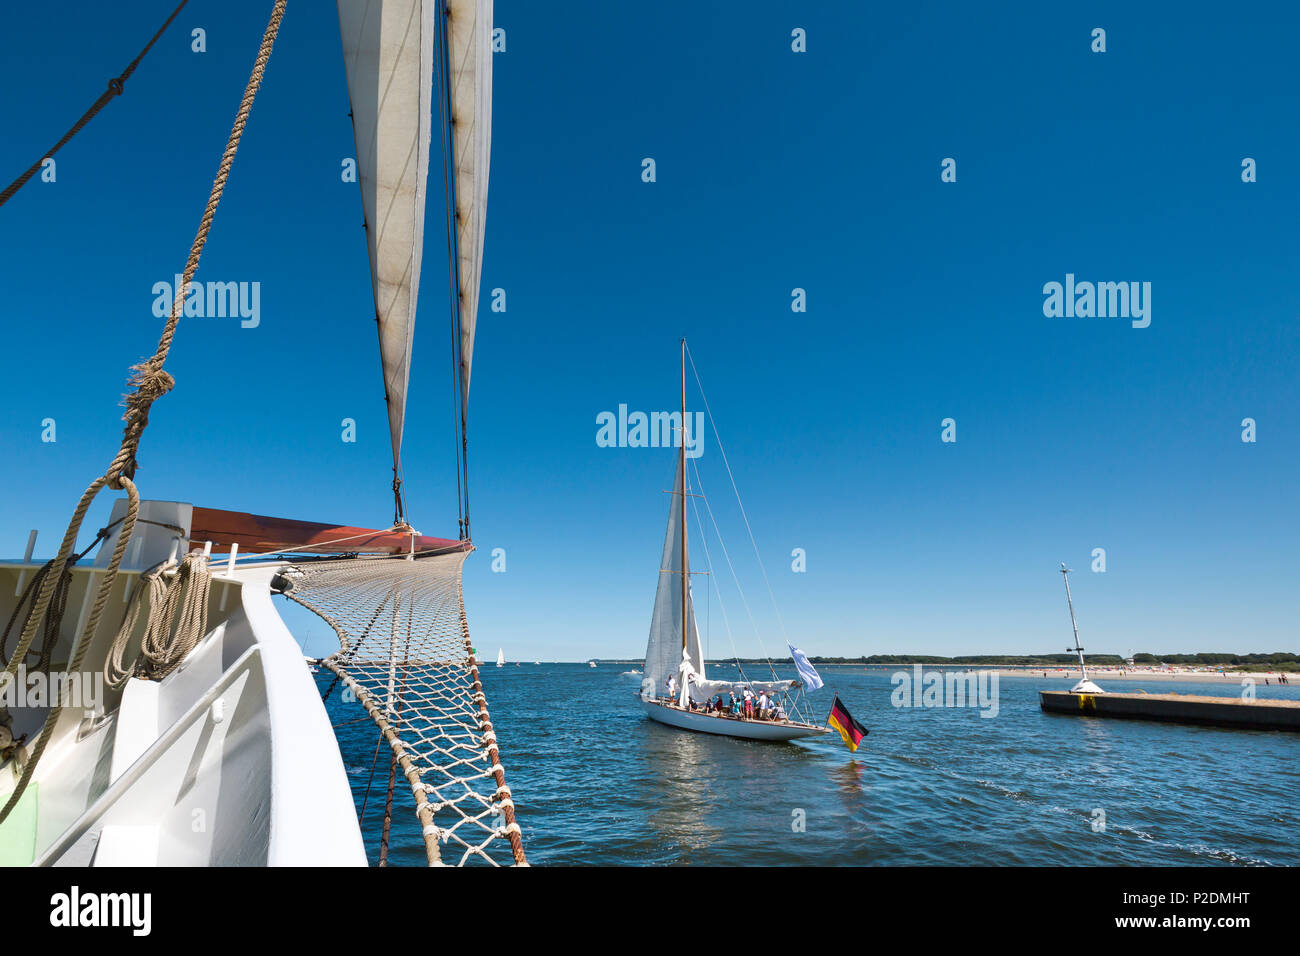 View from sailing boat, Hanseatic City, Luebeck Travemuende, Baltic Coast, Schleswig-Holstein, Germany - Stock Image